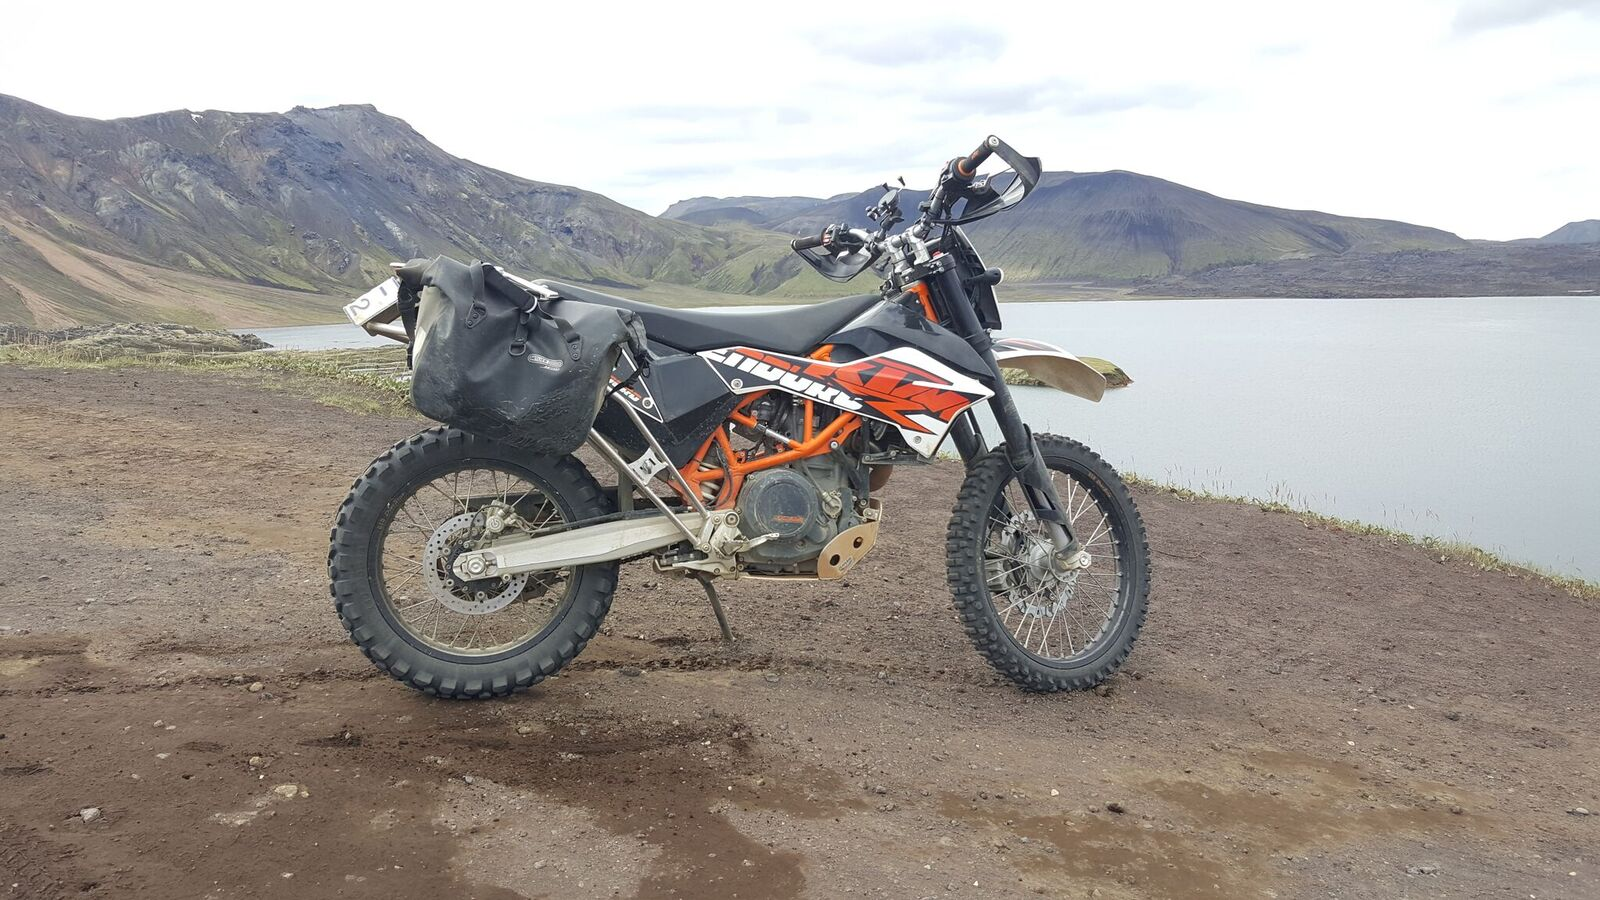 A bike standing by a lake, waiting for it's rider to take it out for a spin.